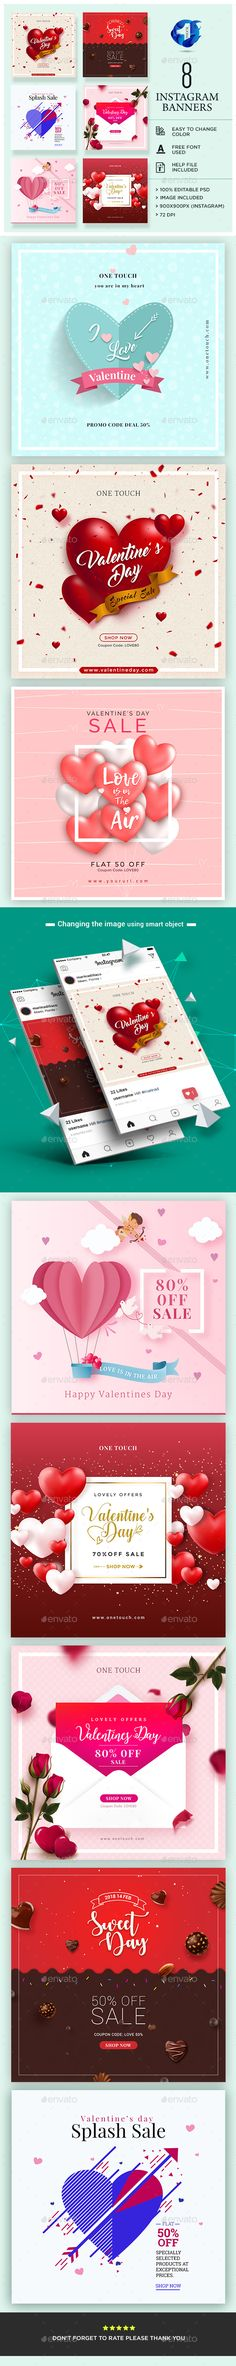 Valentine's Day Instagram Banners - Banners & Ads Web Elements